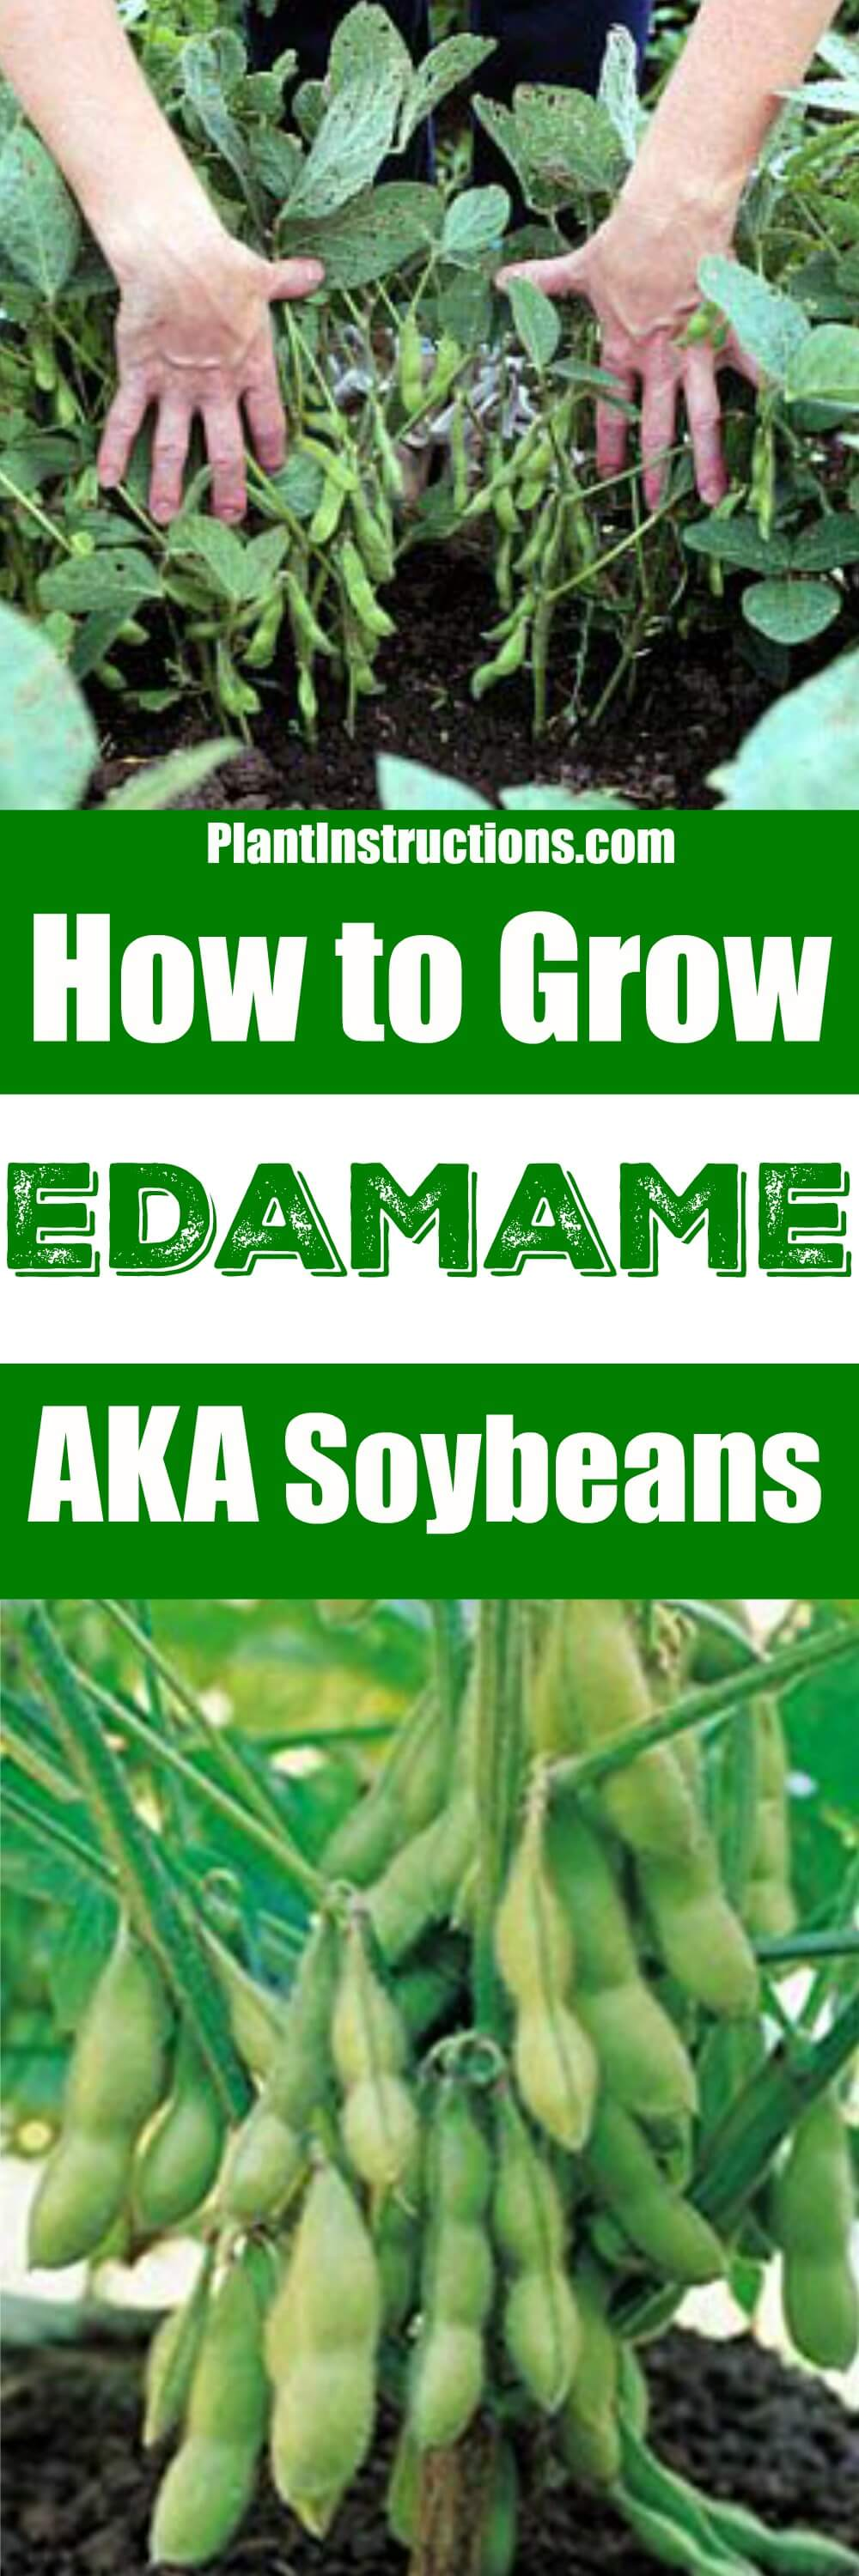 Edamame, or soybeans, are an ancient native crop from the Orient, and are surprisingly easy to grow! Learn how to grow edamame with our gardening guide!